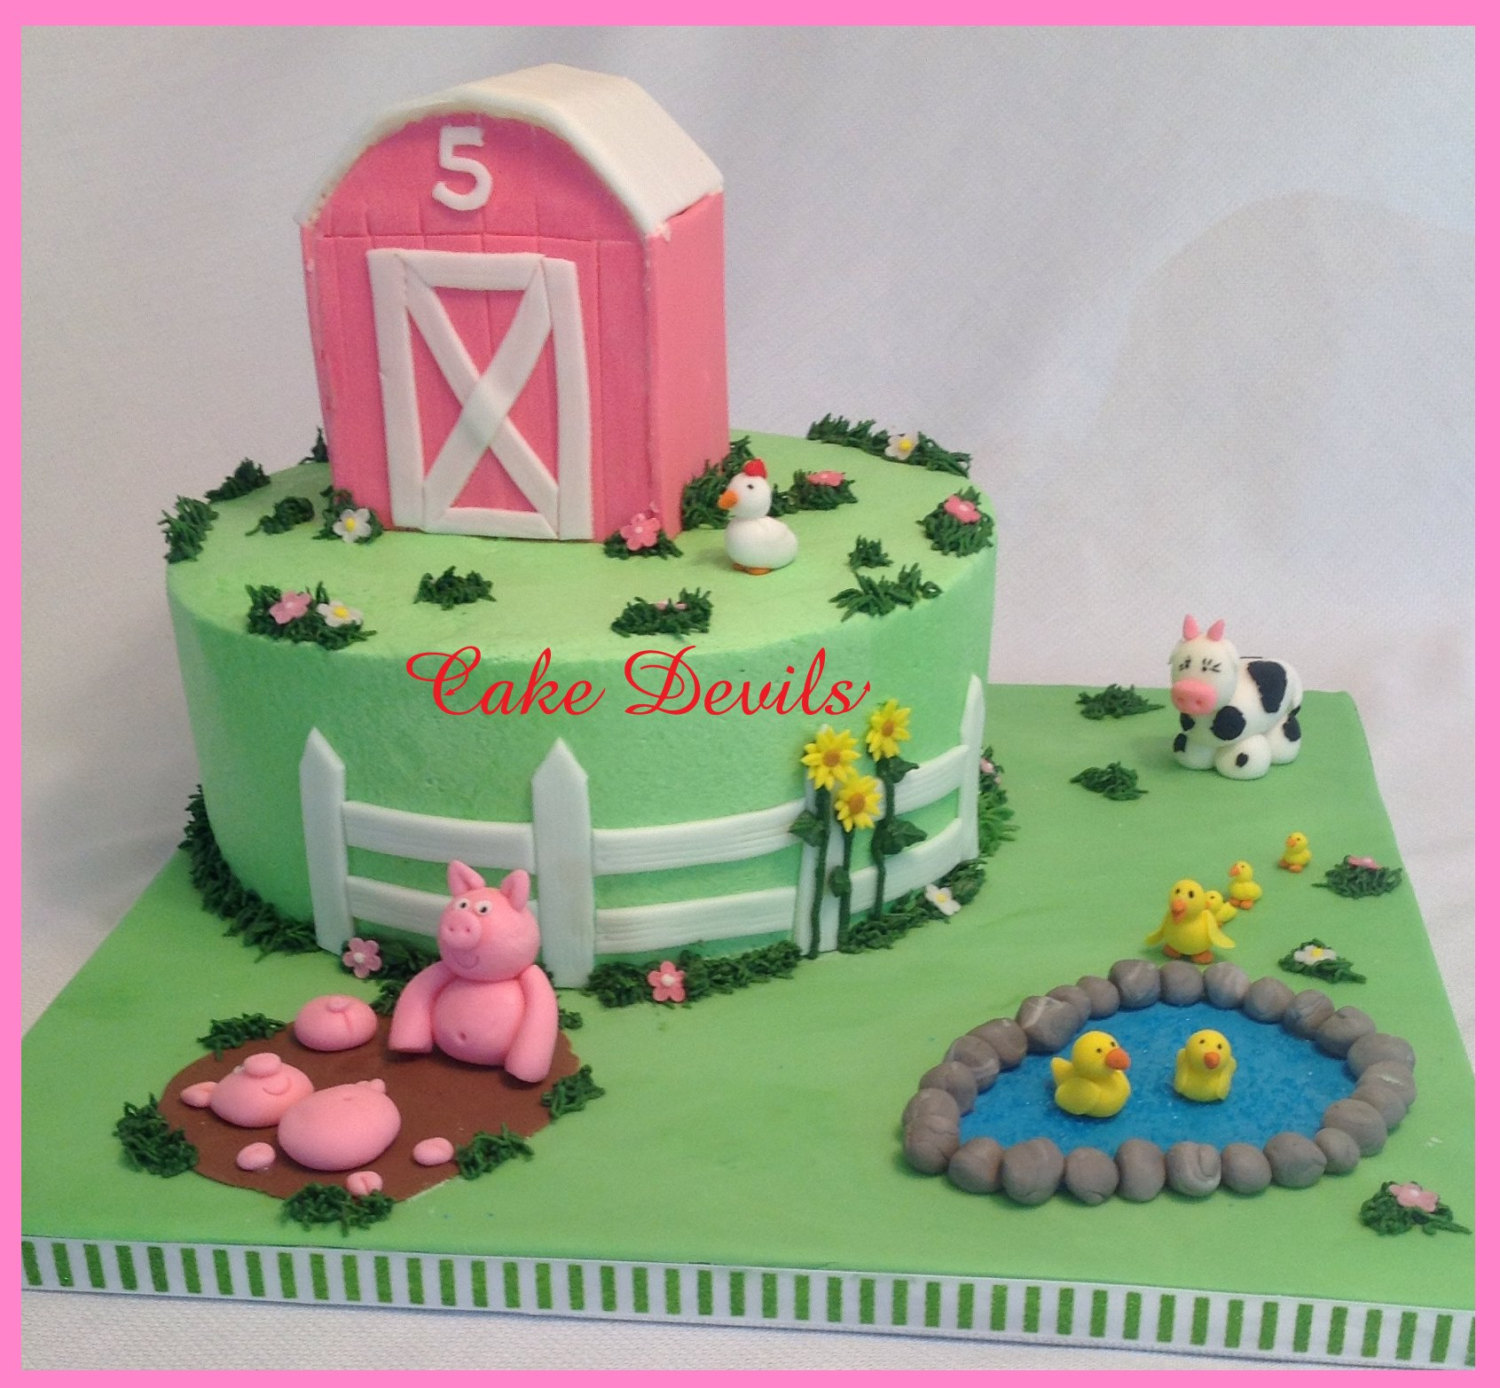 Farm Animals Fondant Cake Topper Kit Decorations Animal Toppers Birthday Handmade Edible